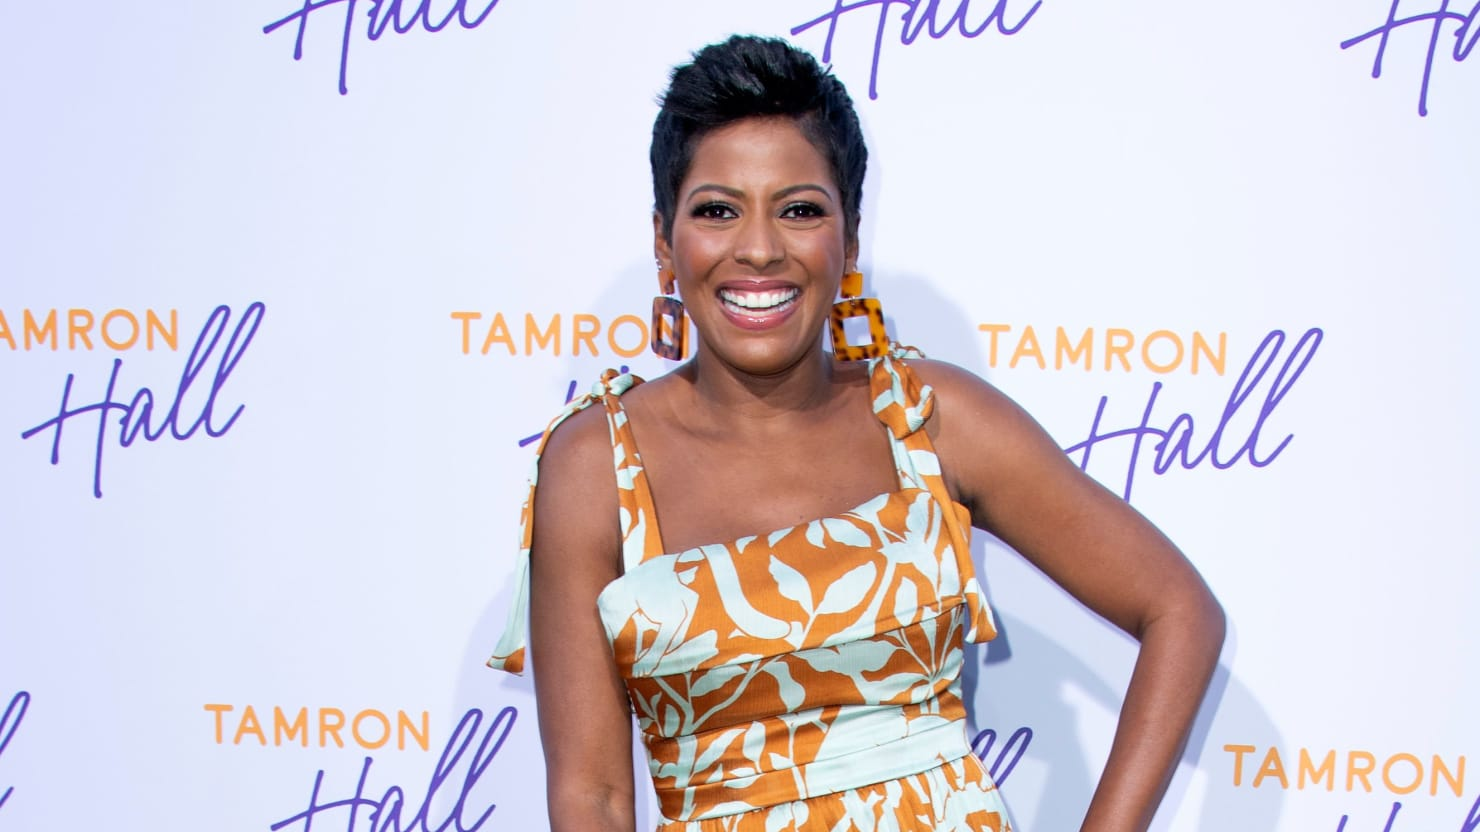 Tamron Hall: NBC Fired Me—Even if They Call It 'Demoted'